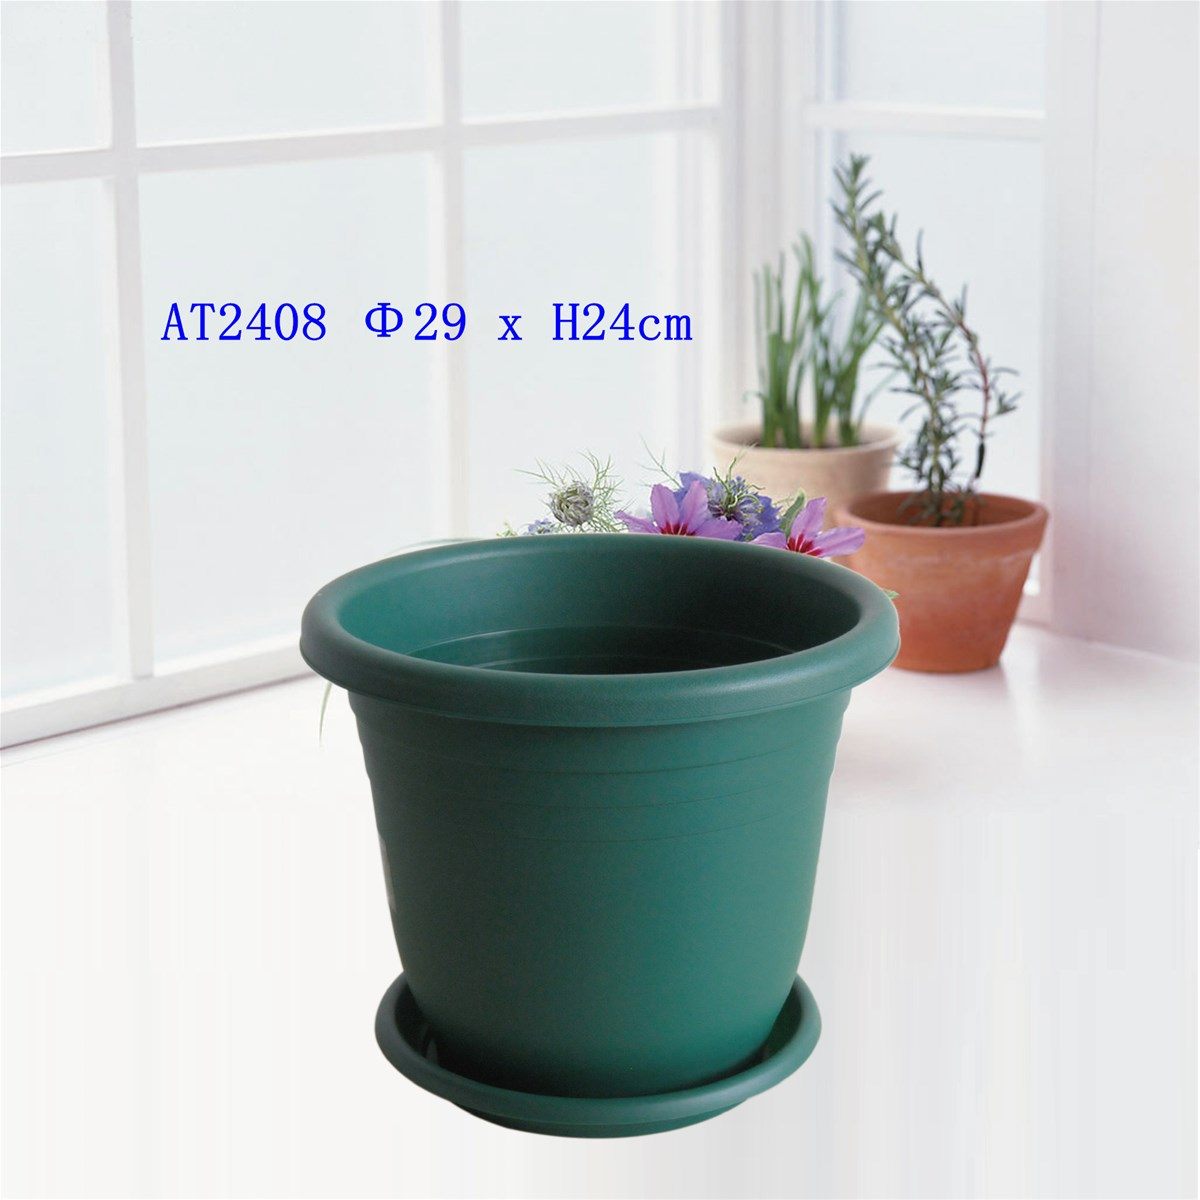 Best quality plastic flower pot series of different size round flower pot